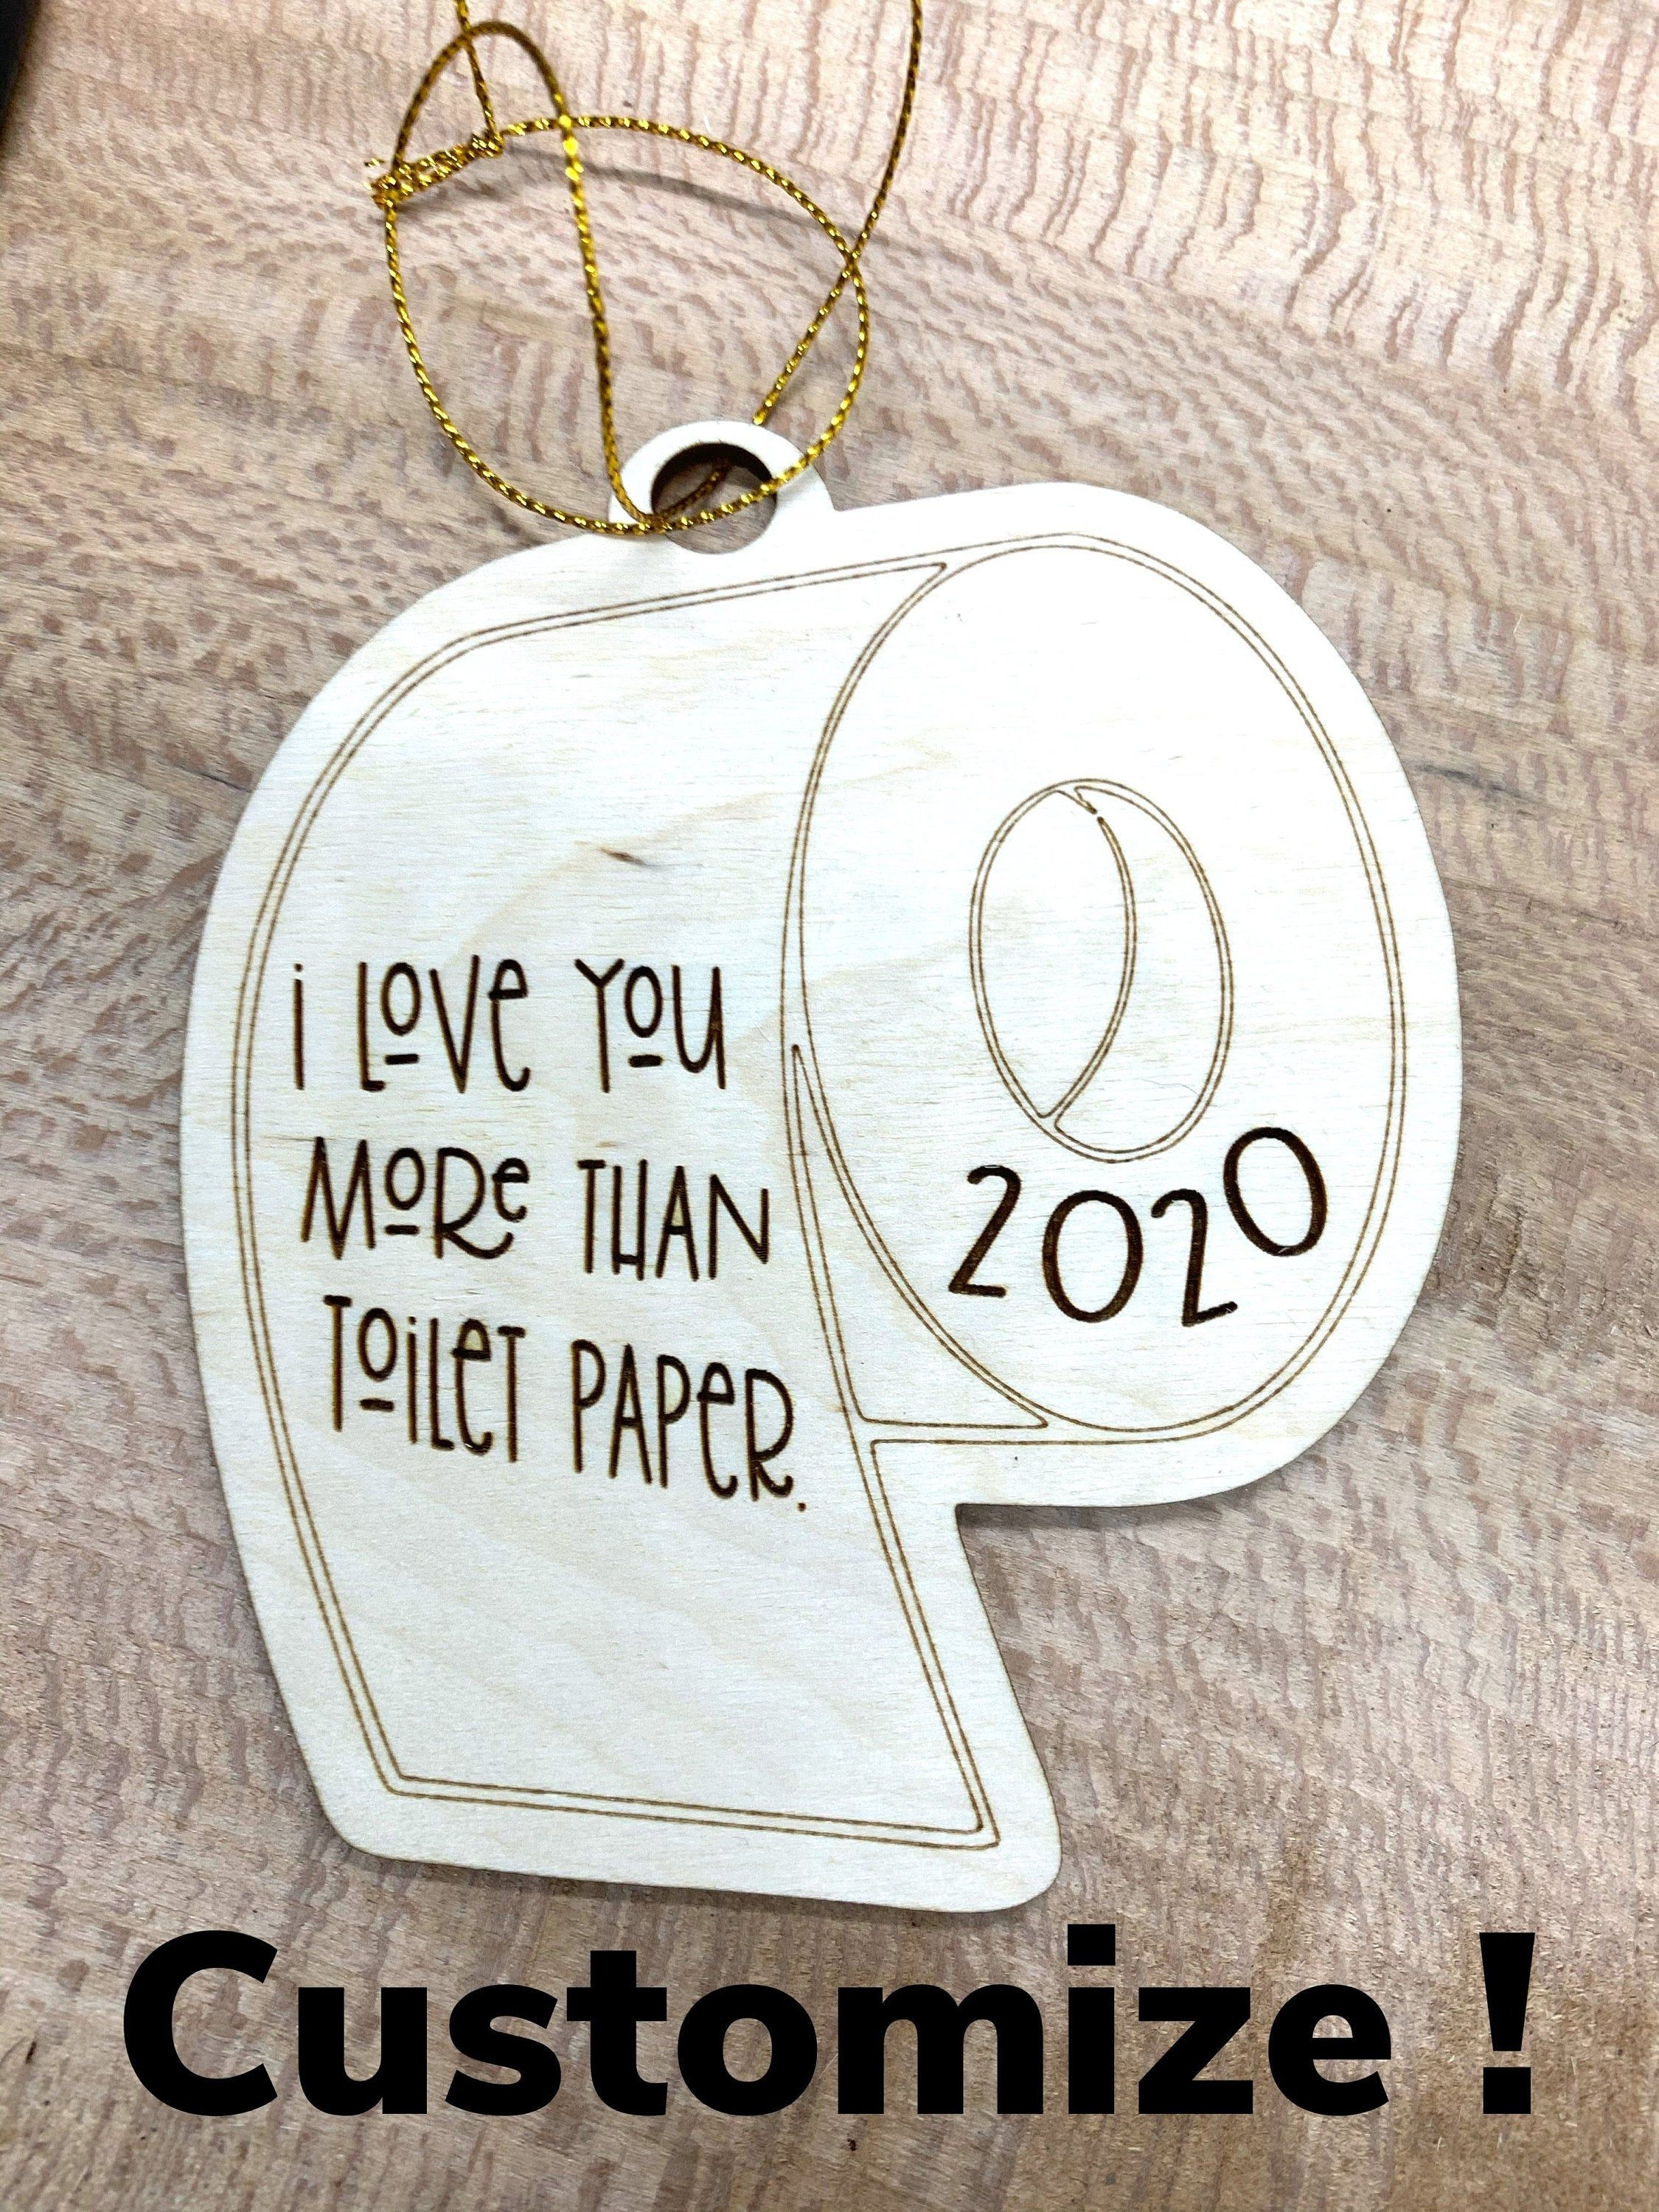 Customizable Toilet Paper Ornament Car Charmtoilet Paper Etsy Paper Christmas Ornaments Paper Ornaments How To Make Ornaments